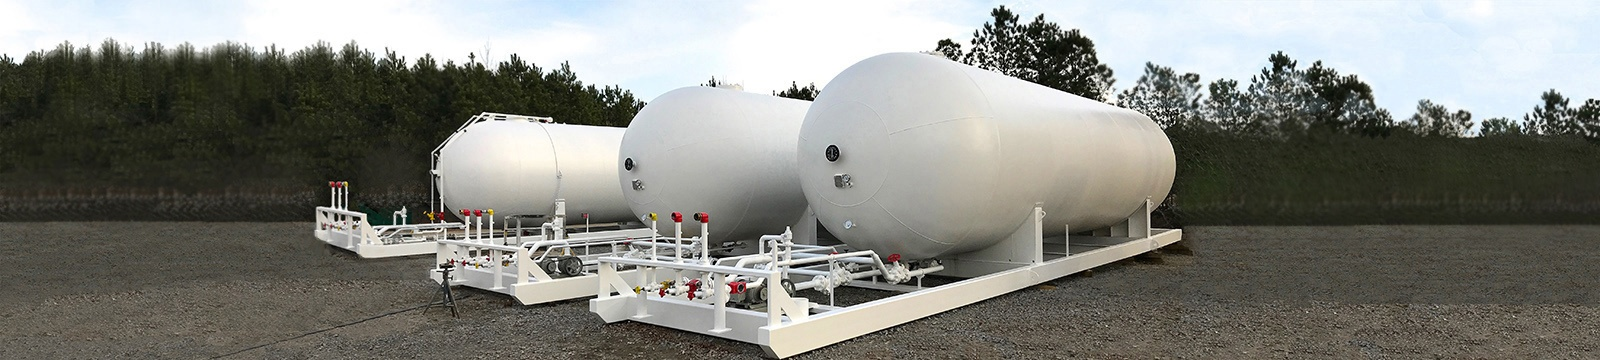 Portable Propane LPG Storage Skids for Sale_6.jpg